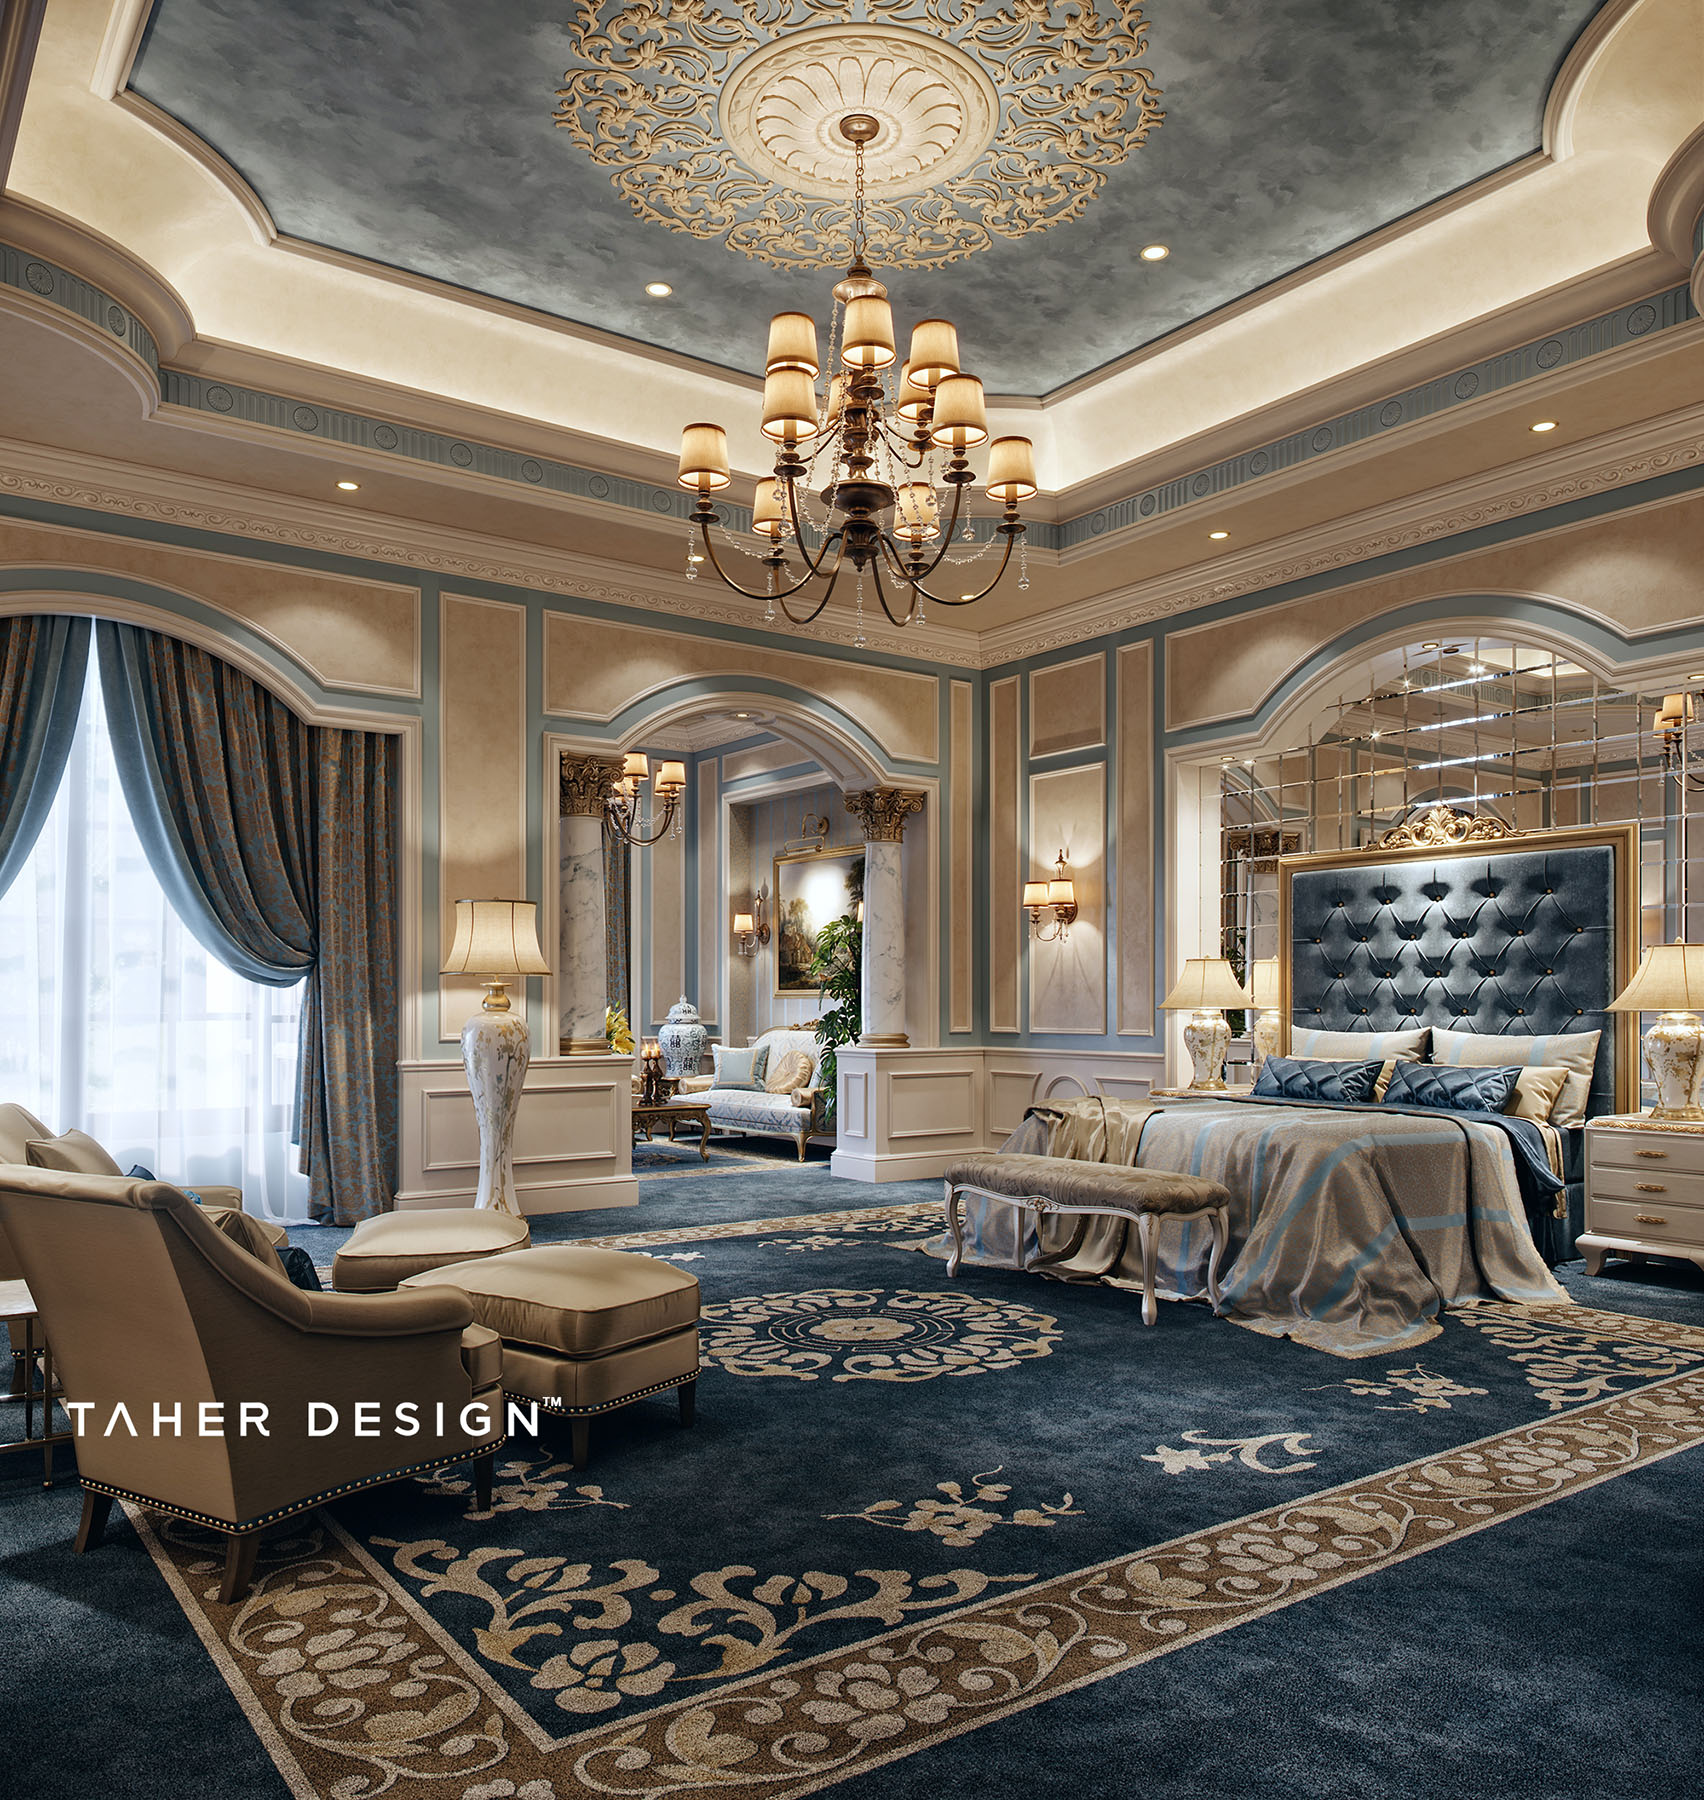 Taher Design Luxury M.bedroom Dubai  (3).jpg